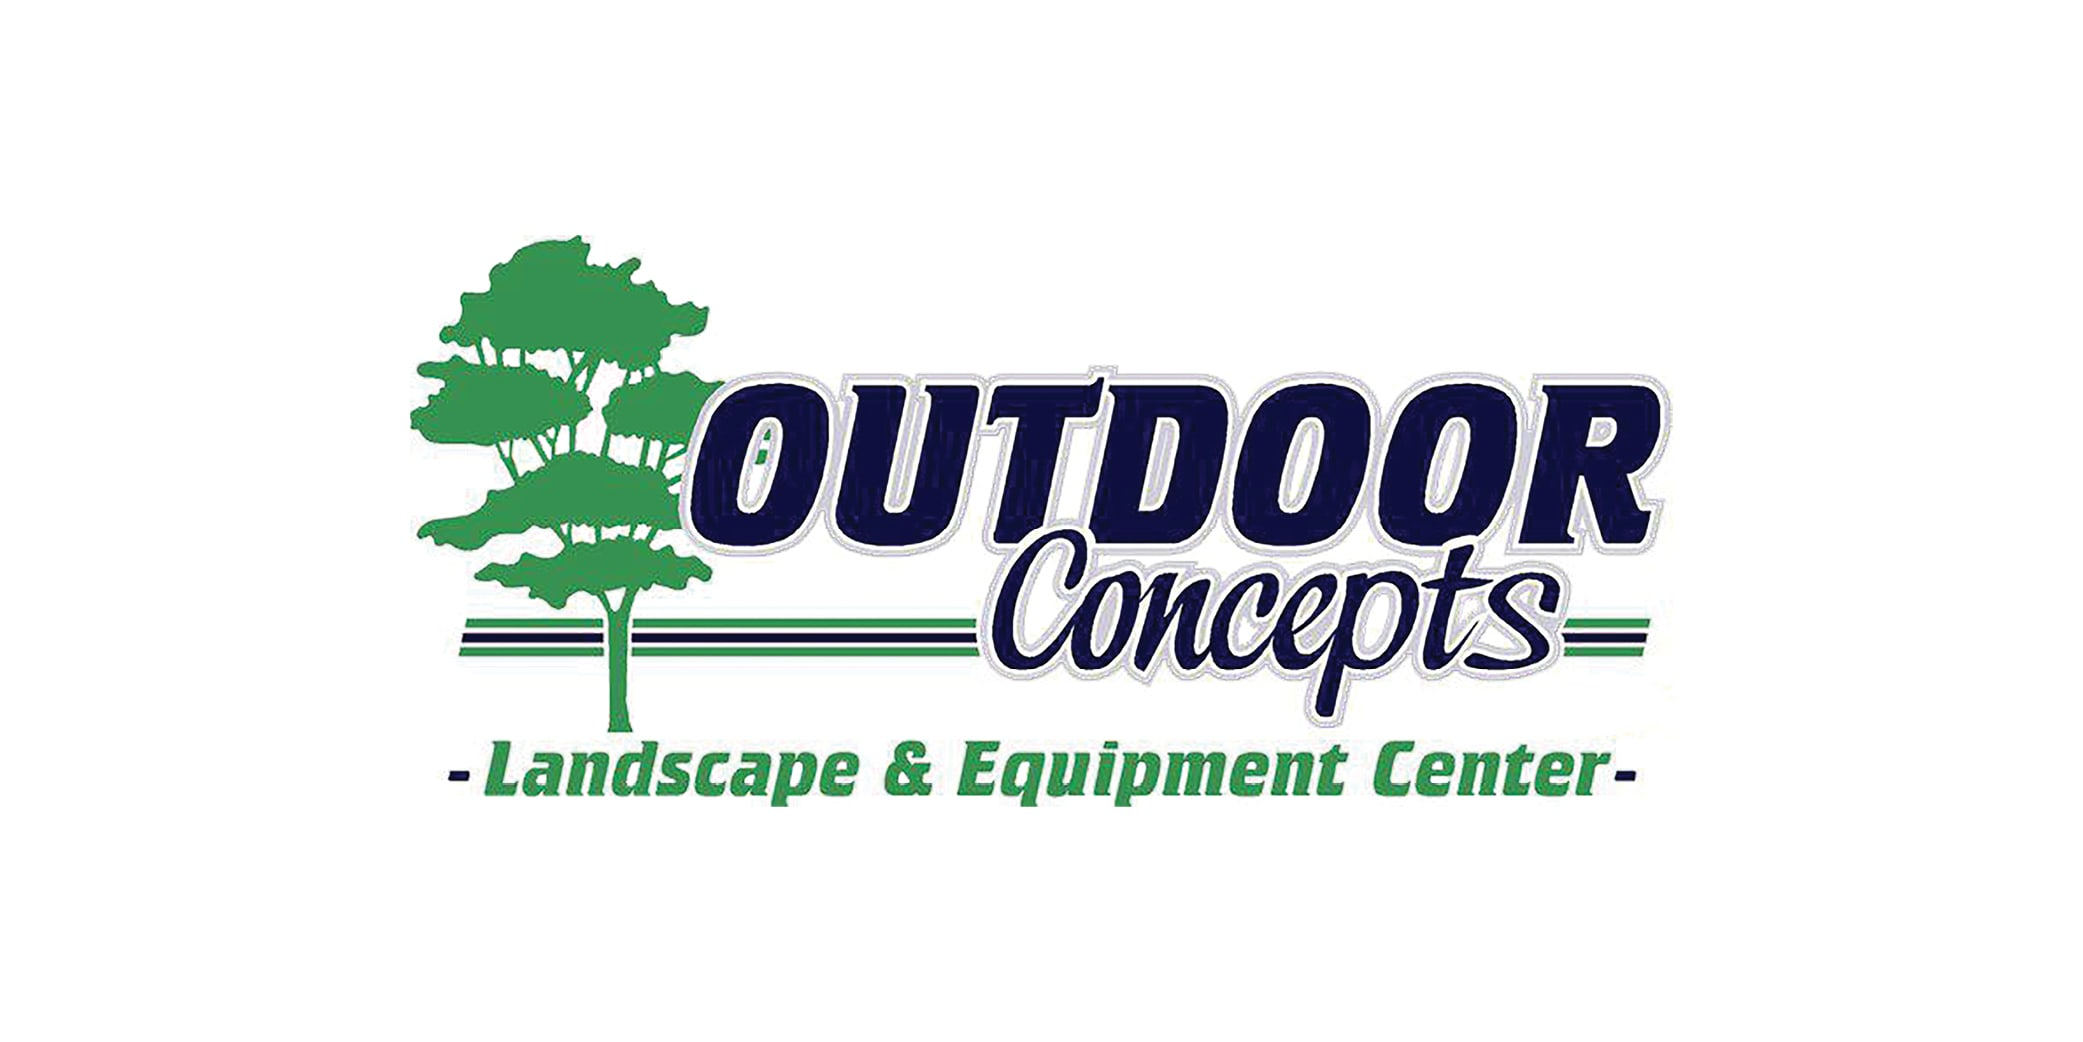 Outdoor Concepts